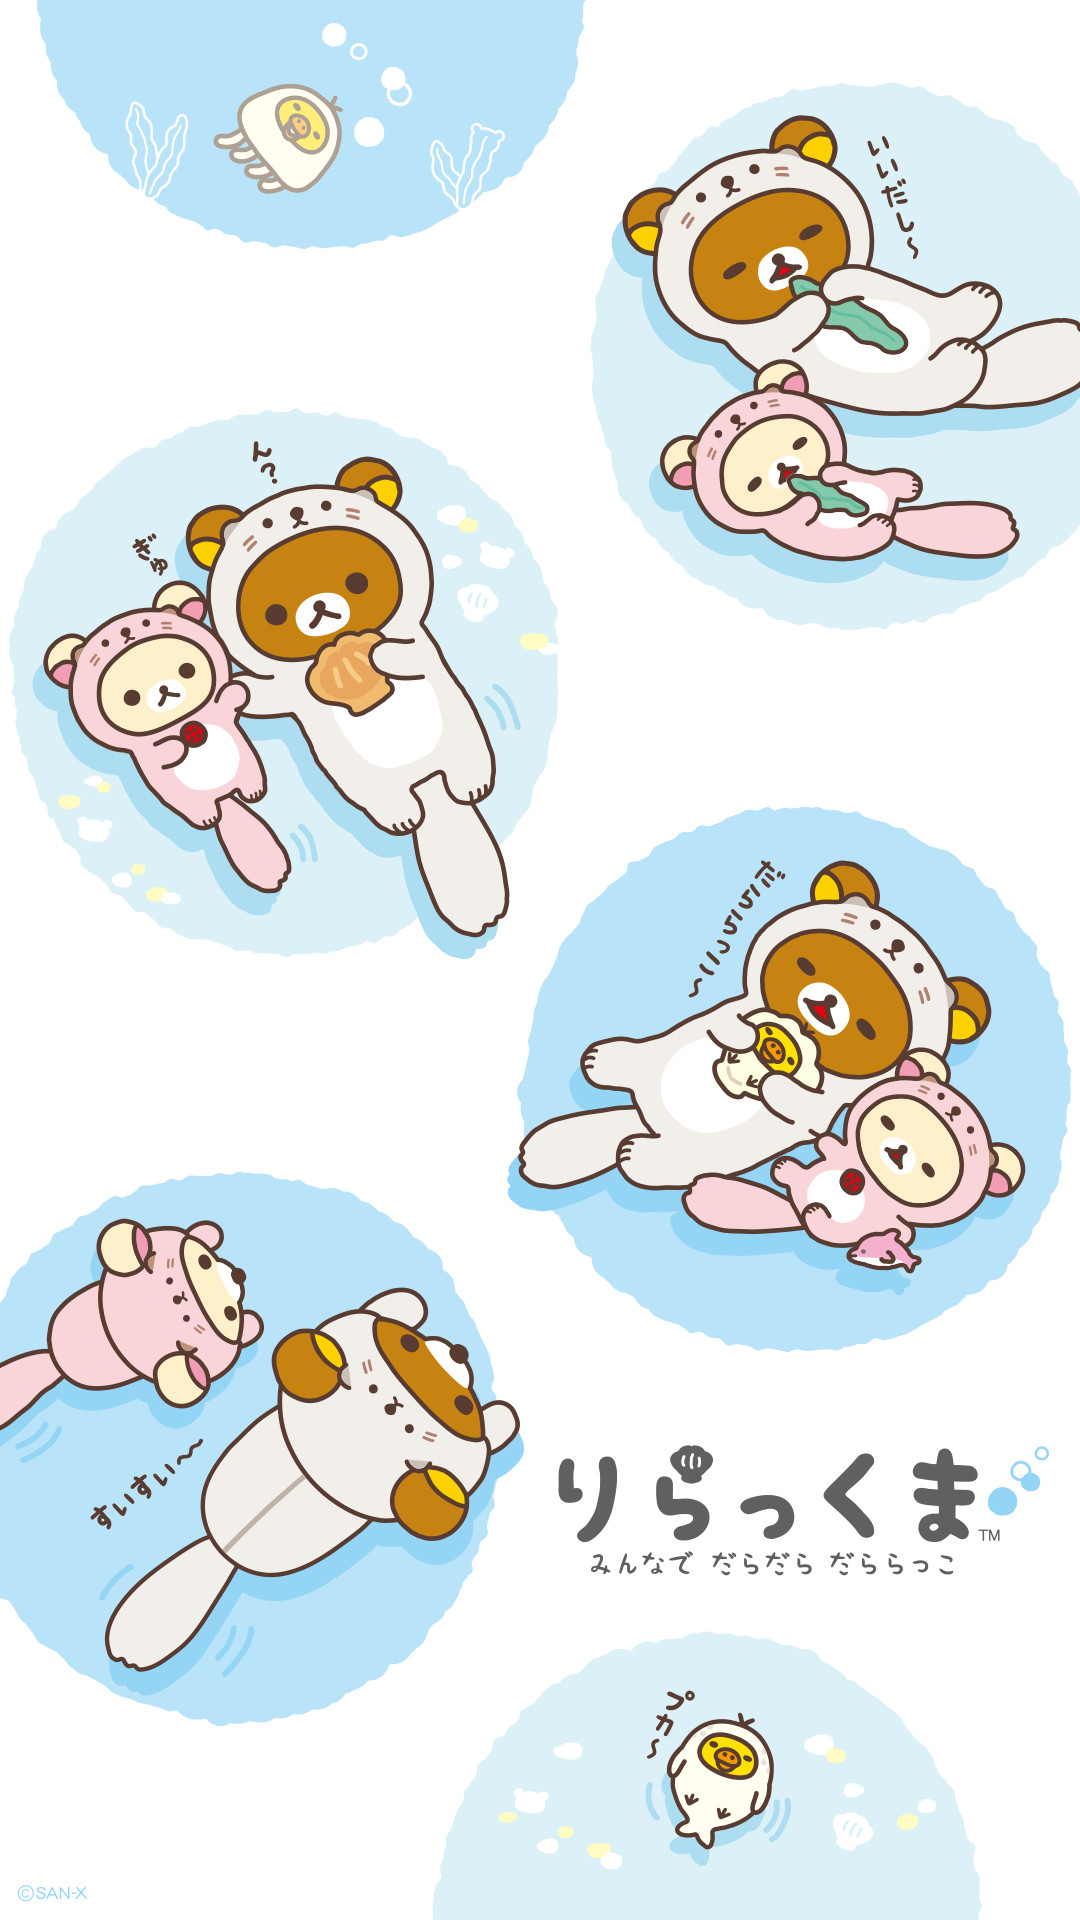 1080x1920 Rilakkuma background (((o(*゚▽゚*)o))). Rilakkuma seal phone wallpaper